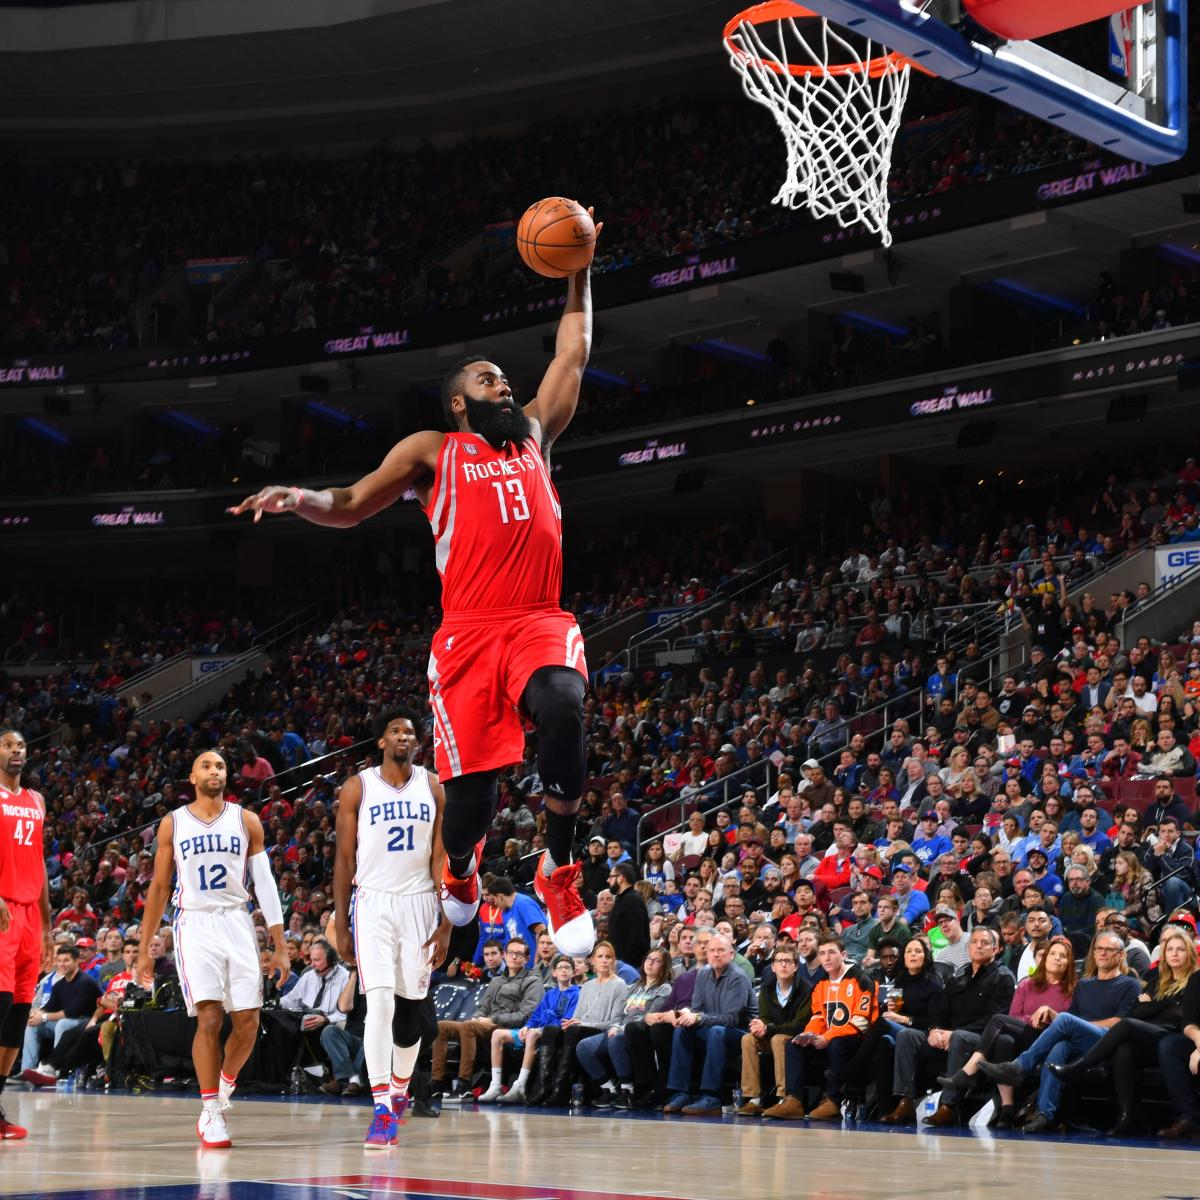 James Harden Yearly Stats: James Harden Vs. 76ers: Stats, Highlights, Twitter